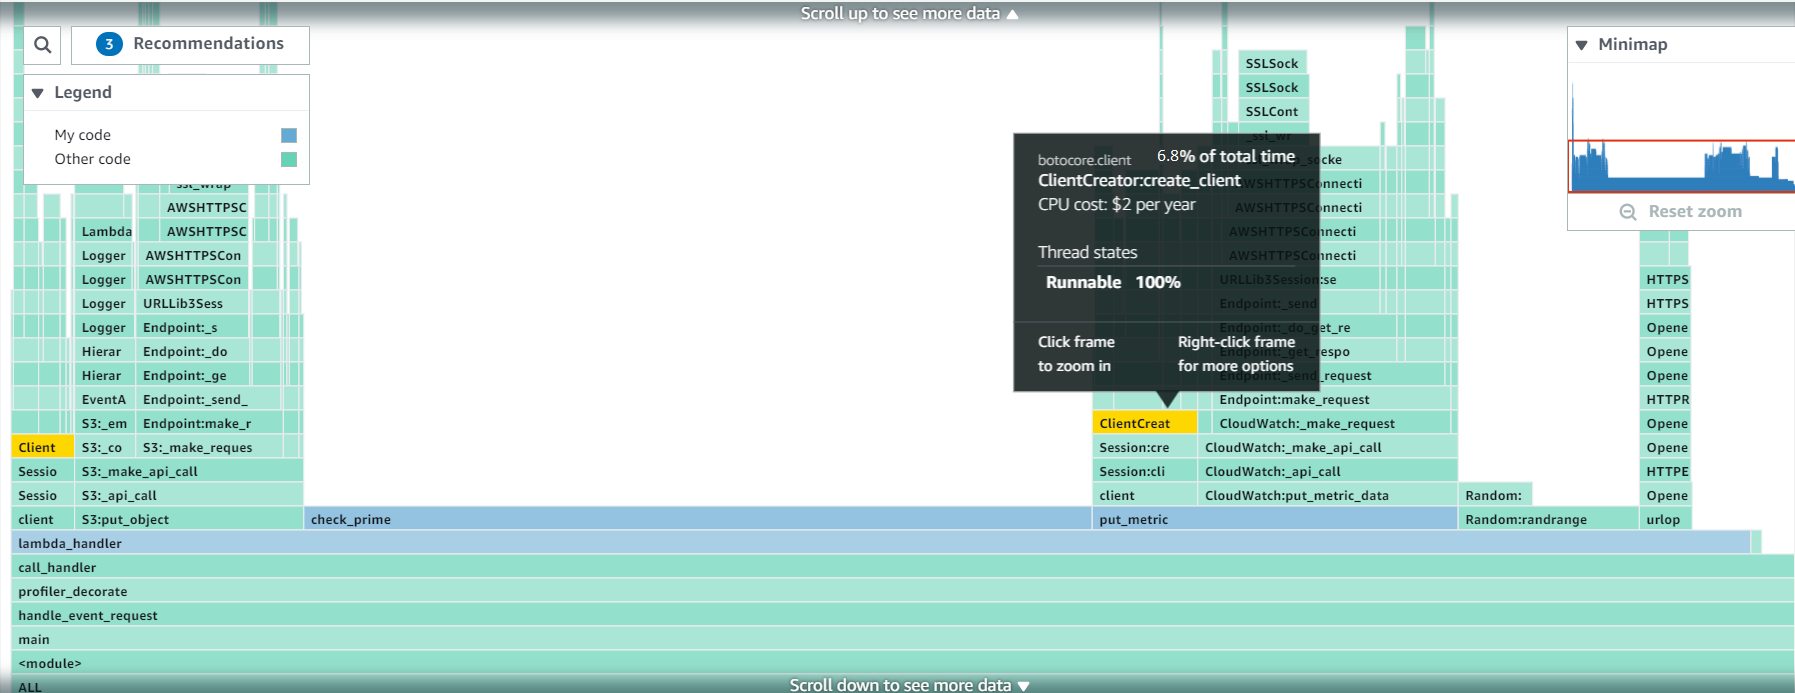 This image shows the CPU Utilization flame graph for the Lambda function